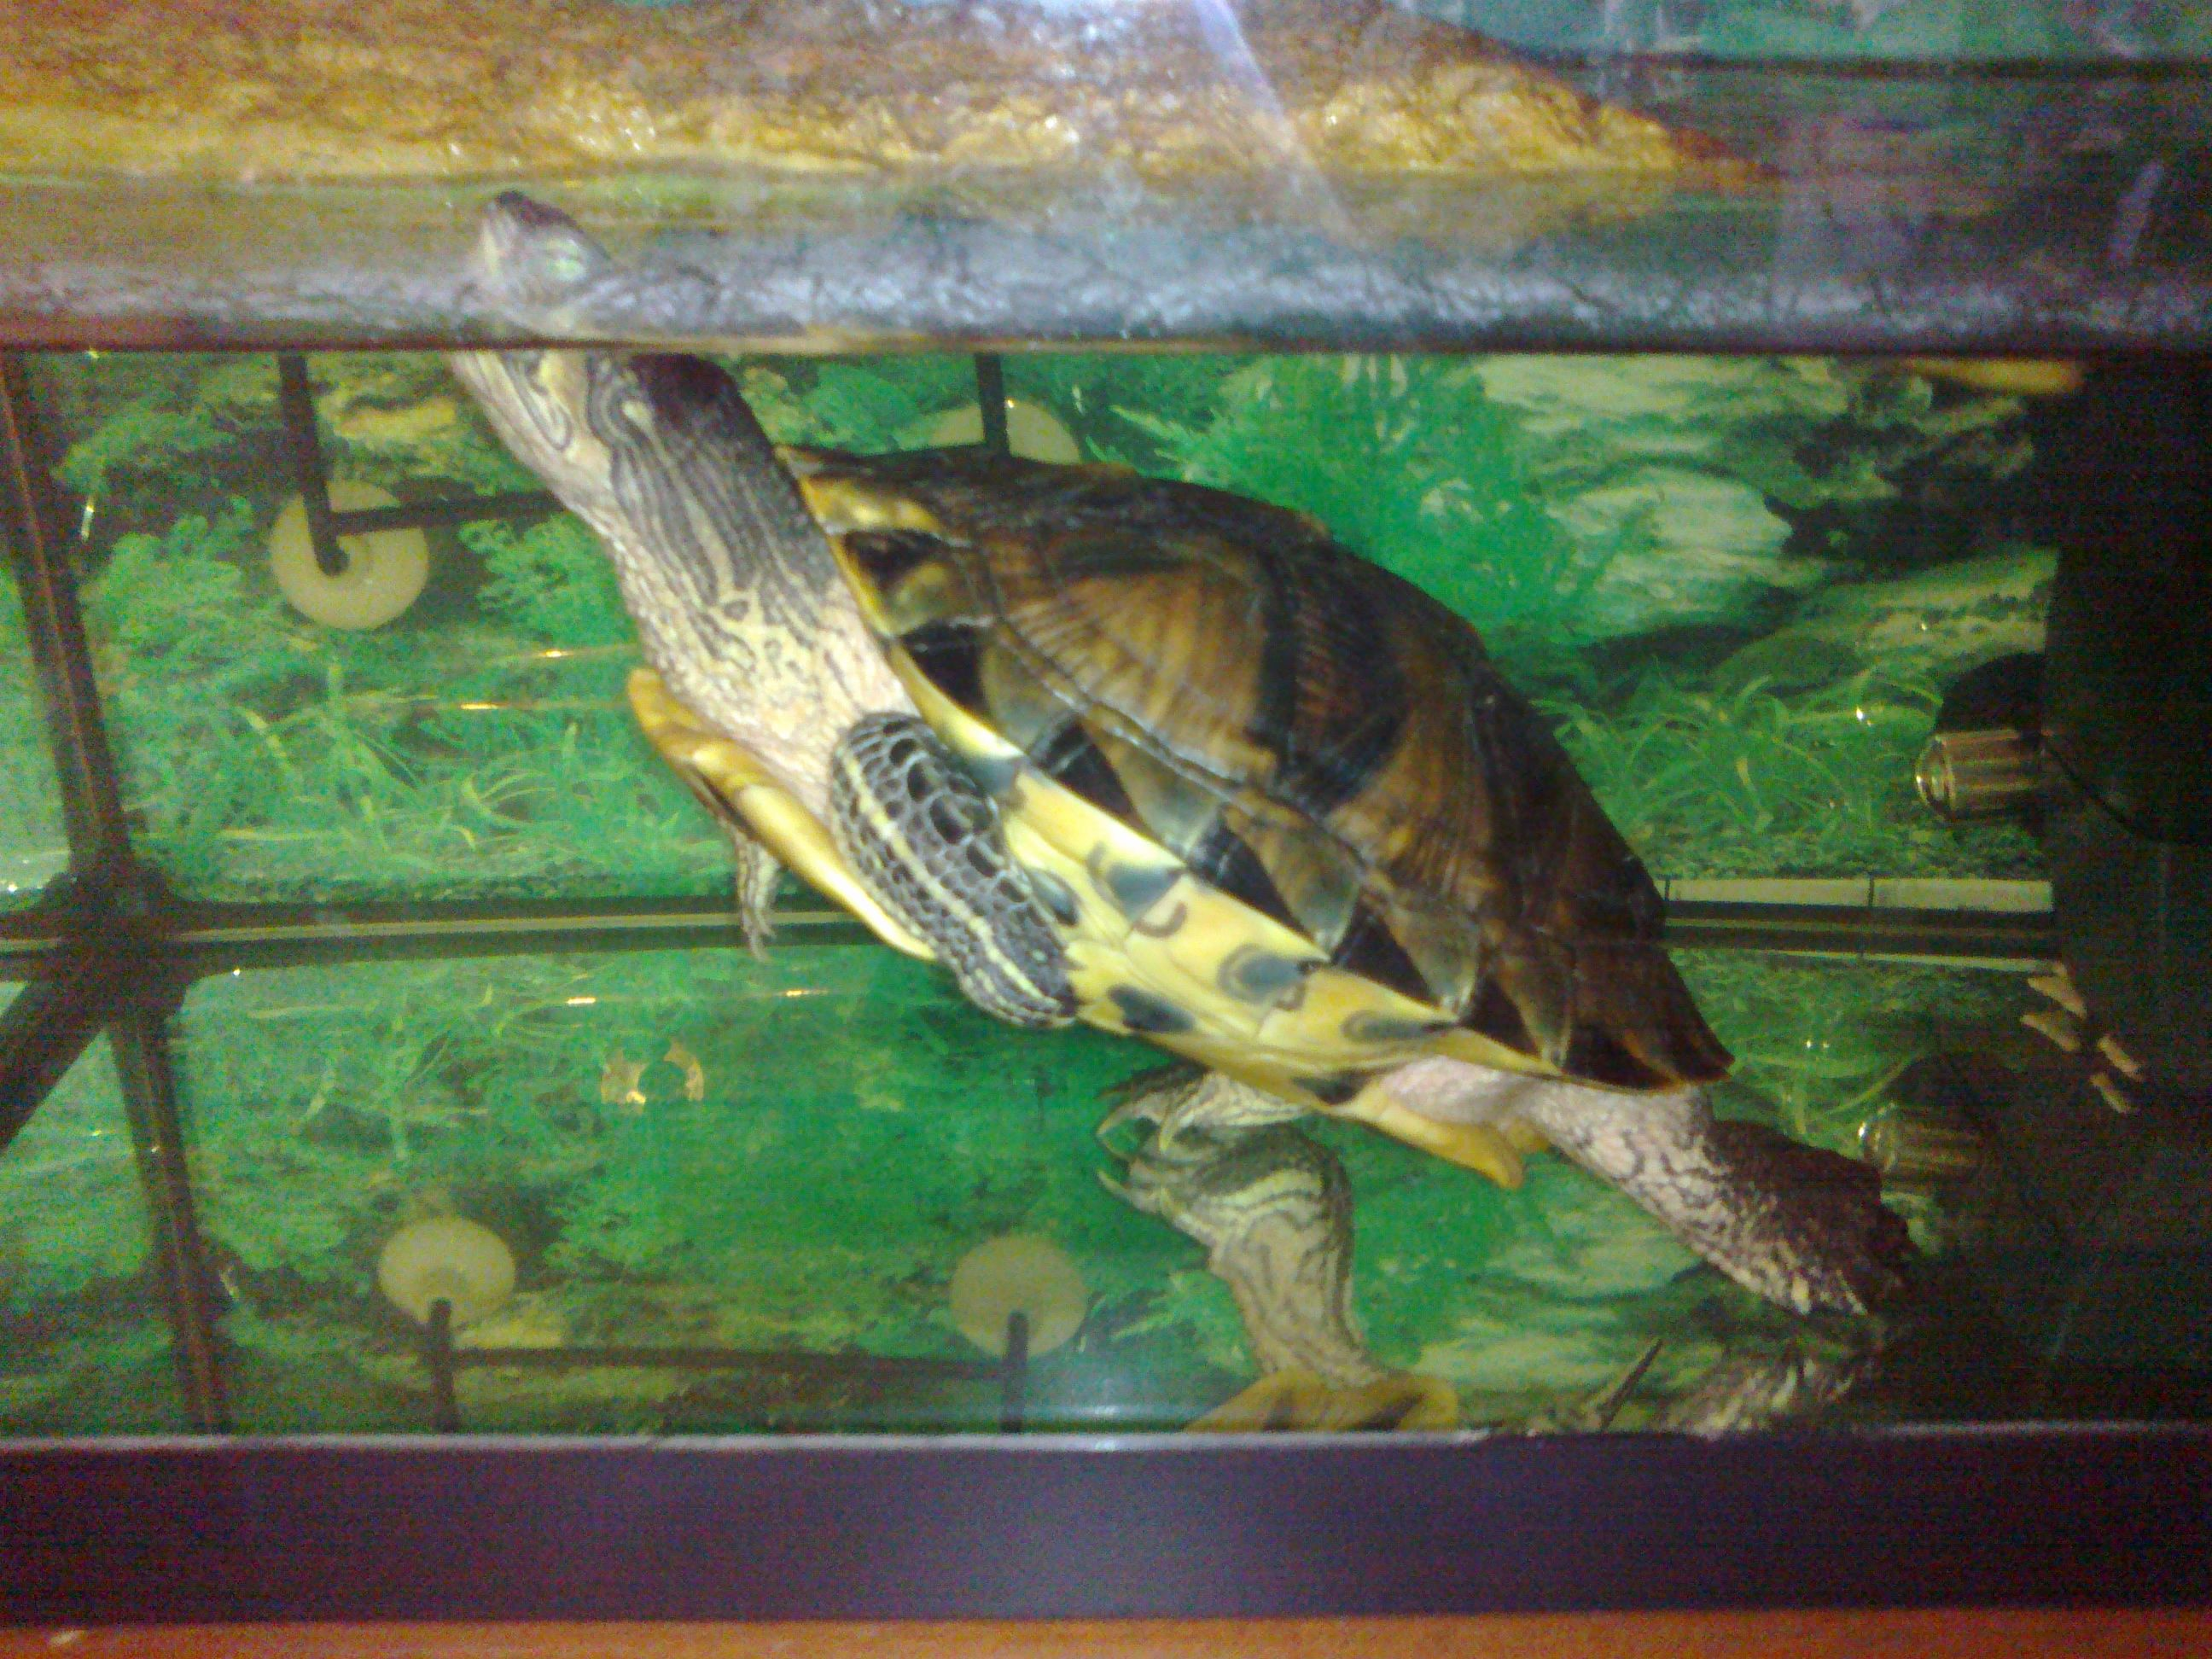 ma tortue aquatique